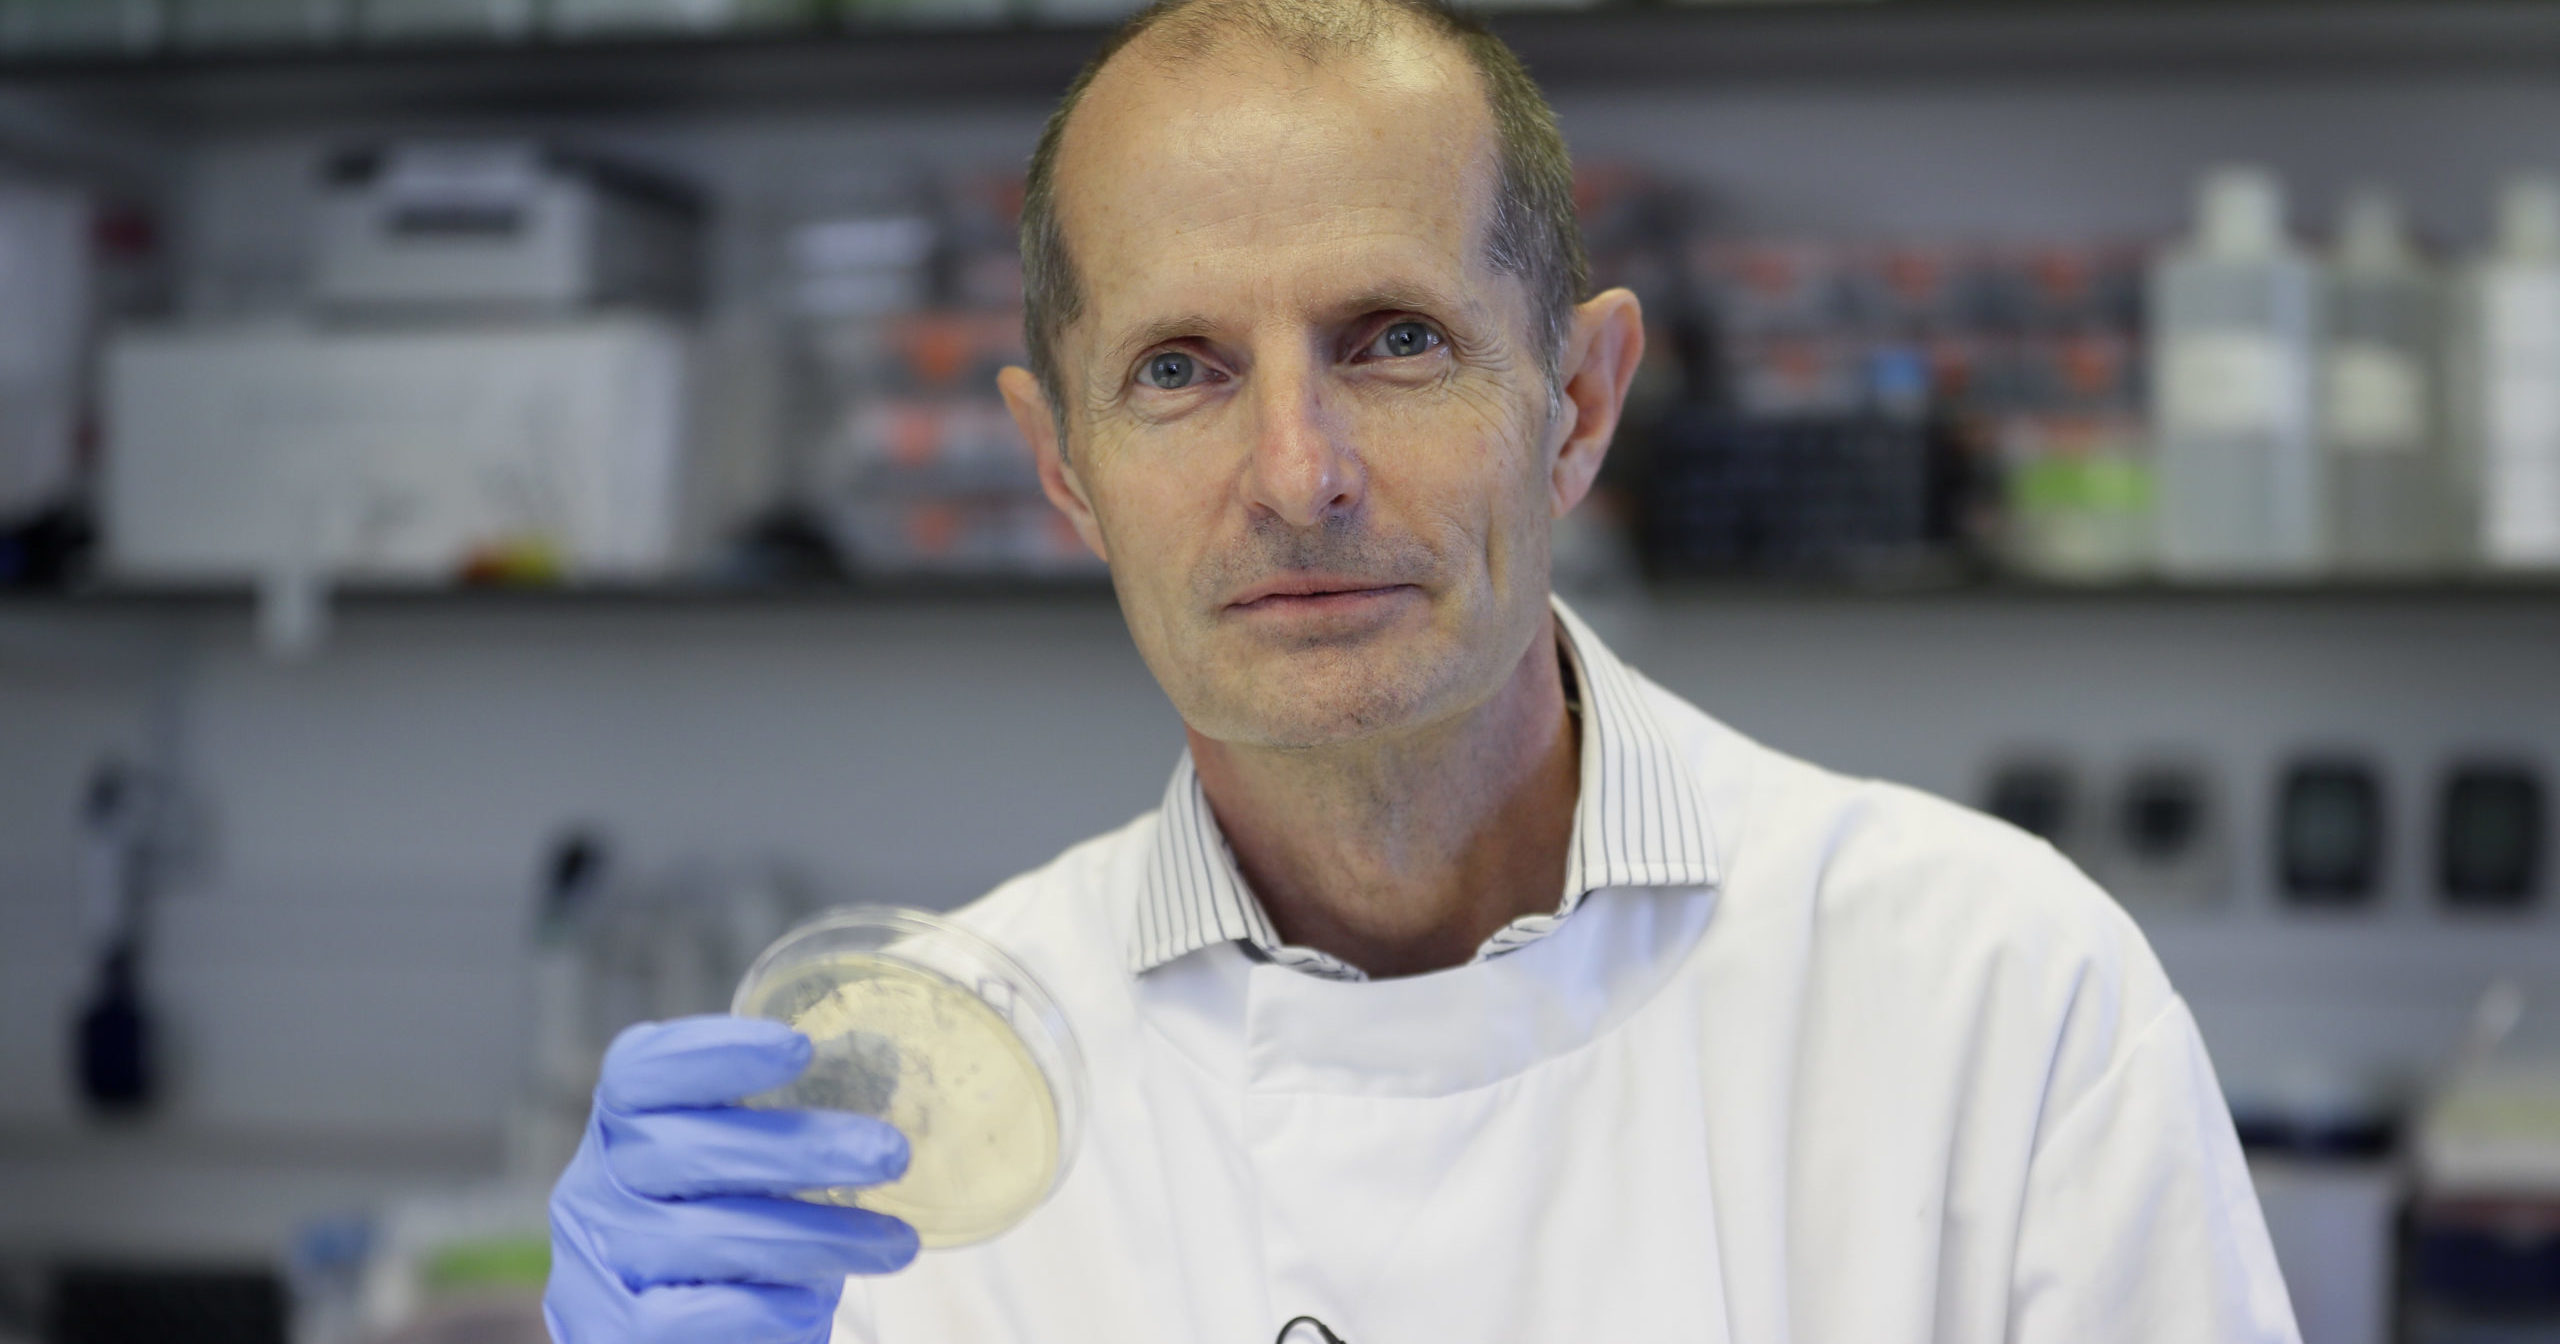 UK Scientists Immunize Hundreds with COVID Vaccine